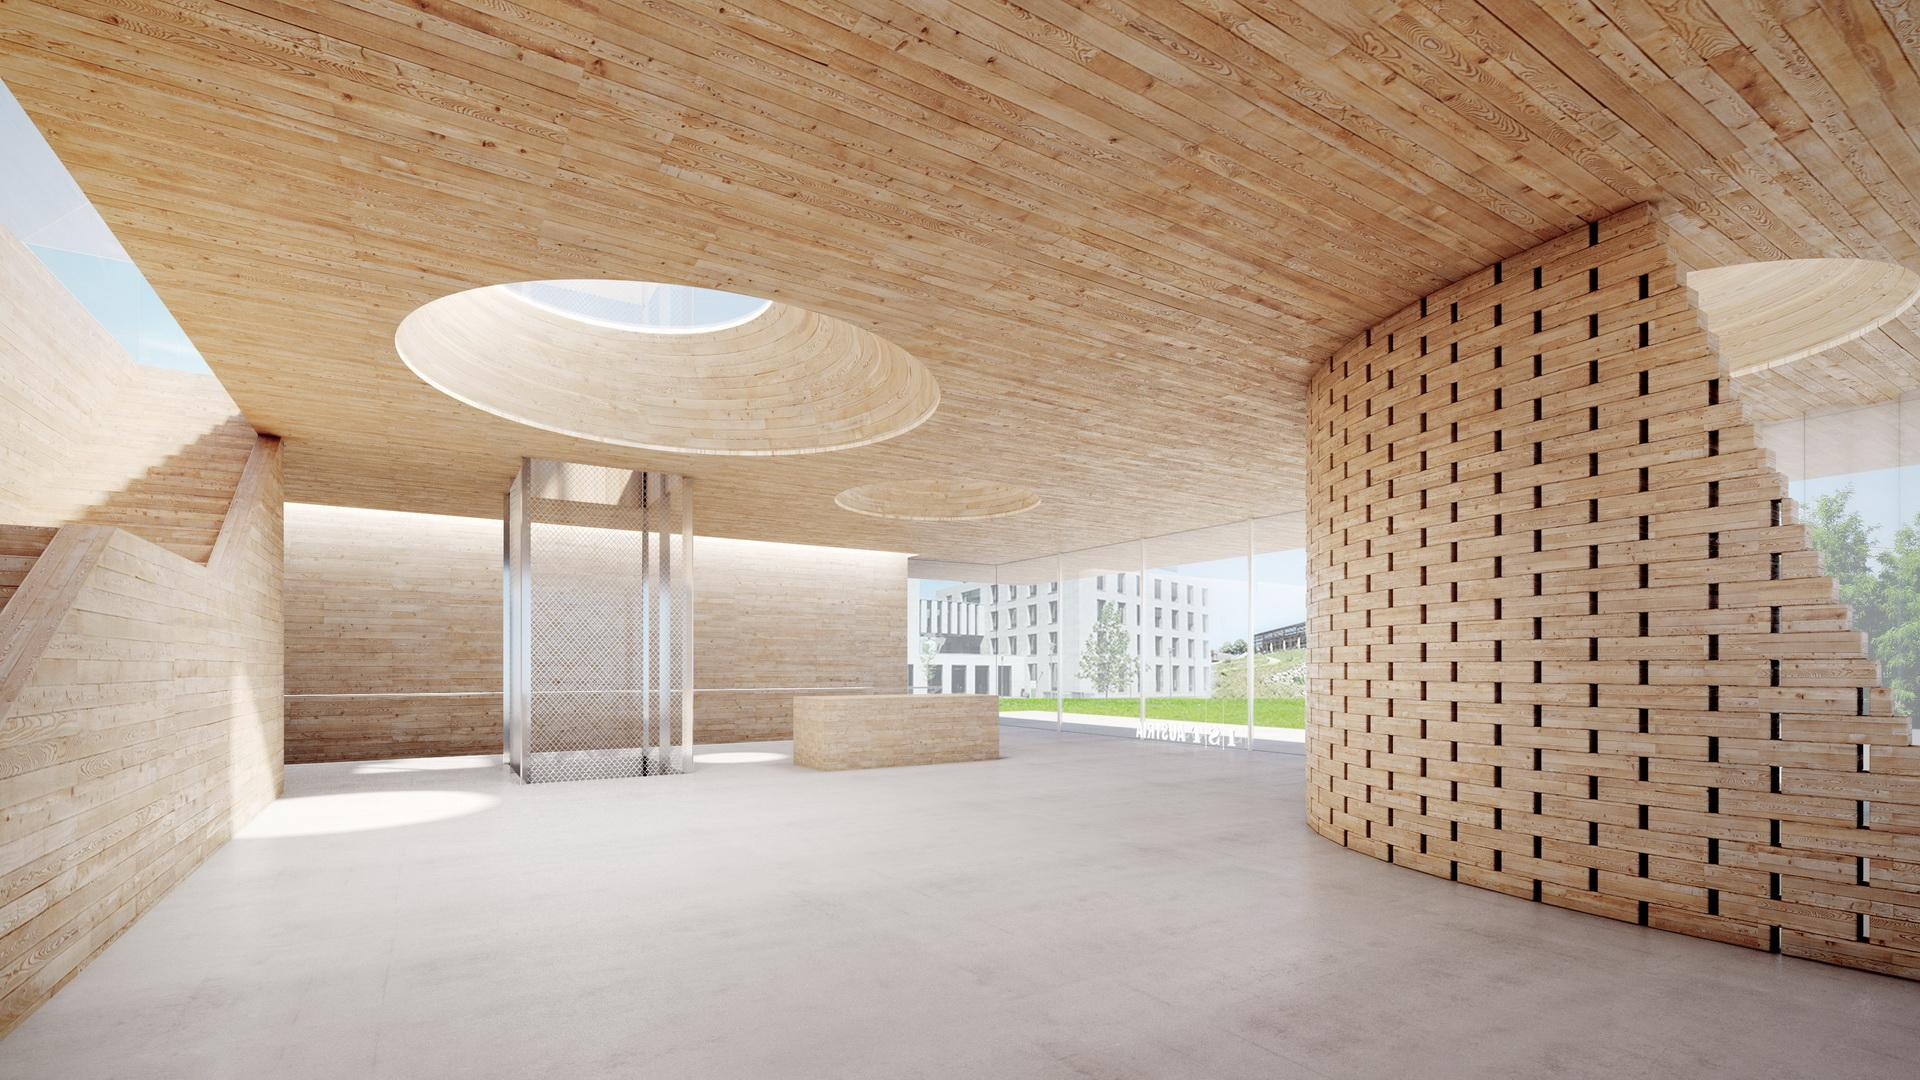 OHA - 813 IST AUSTRIA VISITOR CENTER 02 - Office For Heuristic Architecture